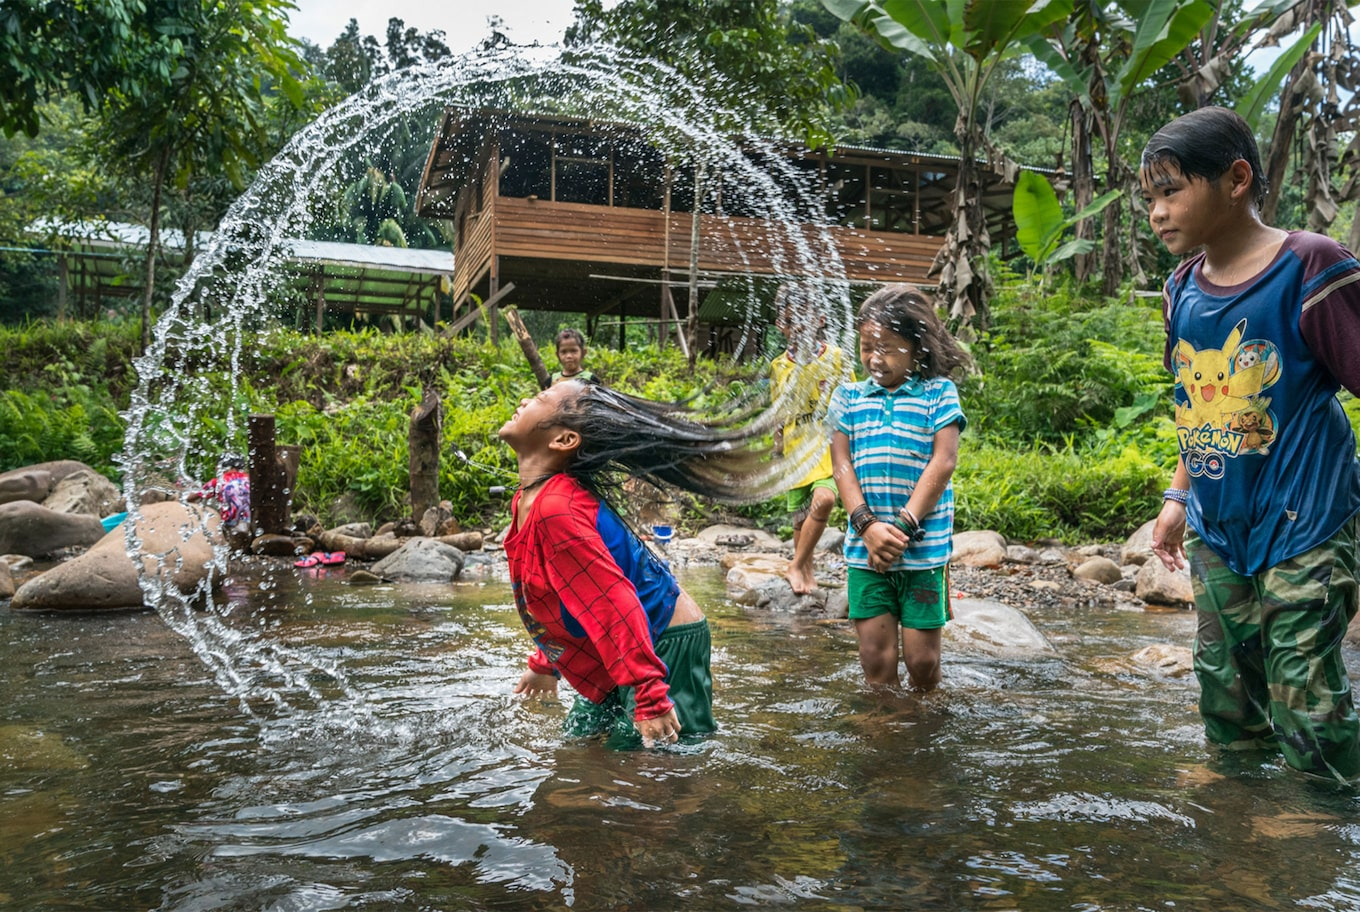 Tomas Wuethrich sony alpha 9 children larking about in a jungle pond with a girl sshaking her wet hair